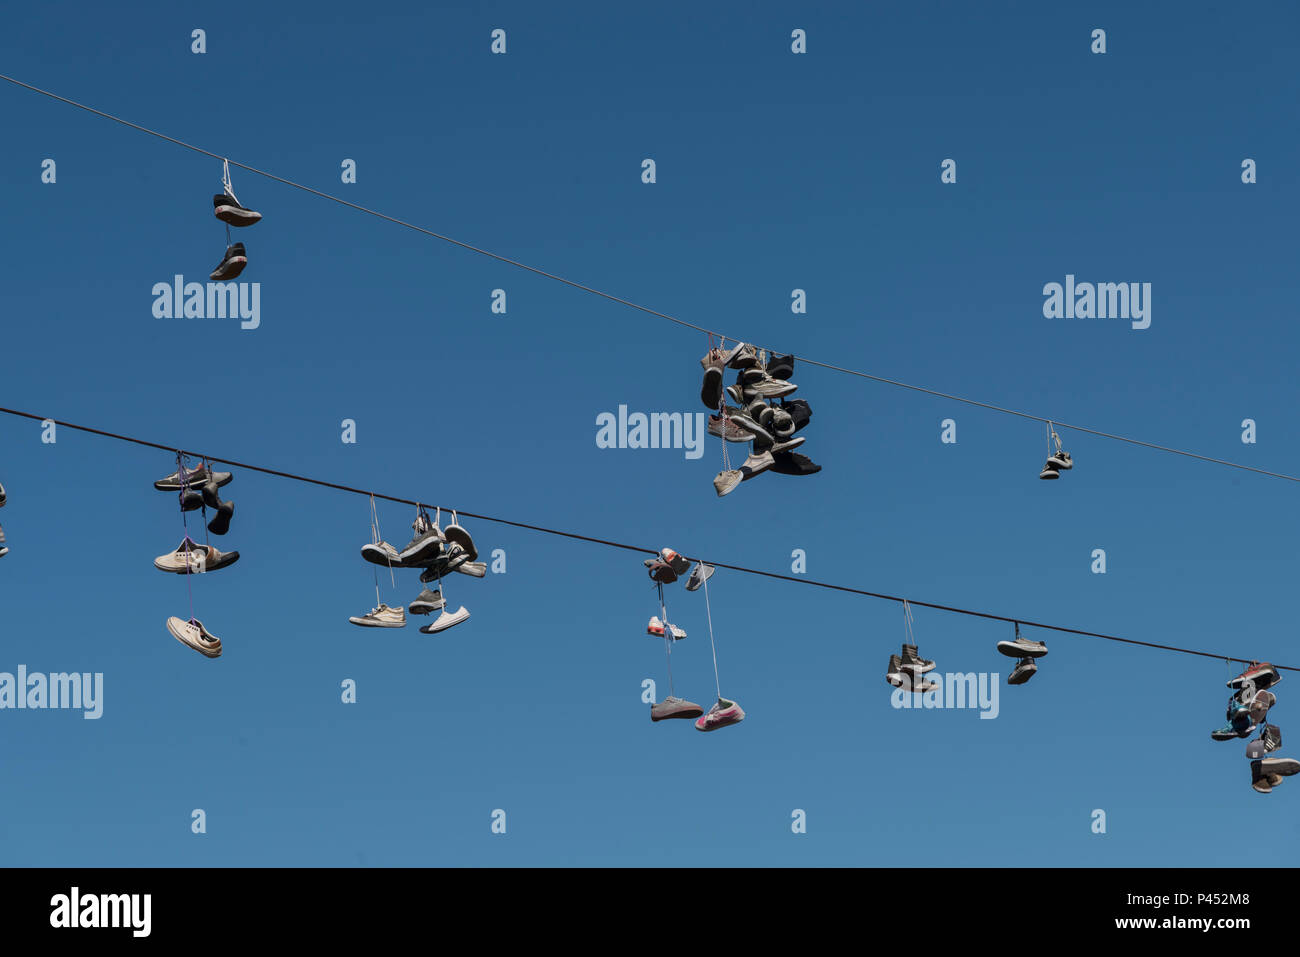 Low angle view of shoes hanging on overhead wires, Tofino, Vancouver Island, British Columbia, Canada - Stock Image